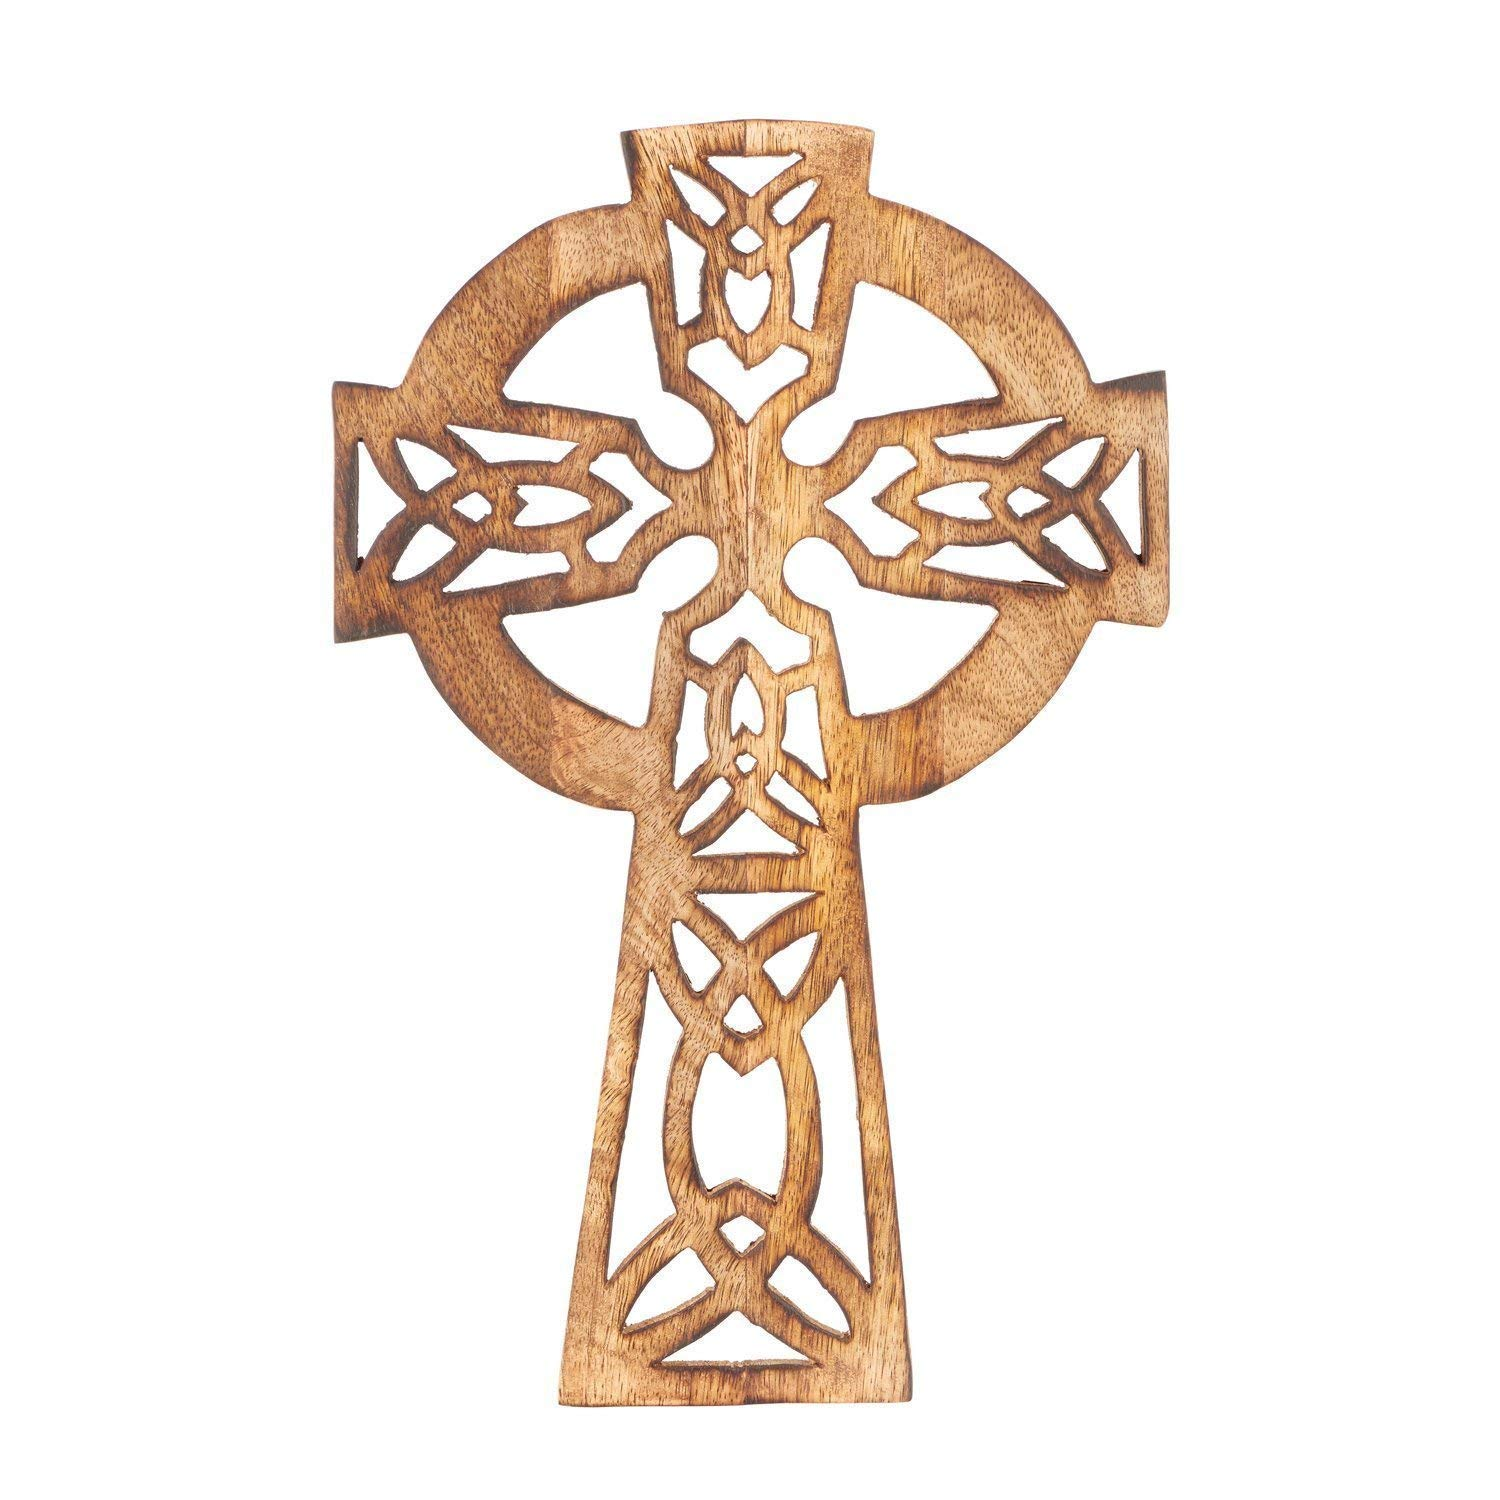 Celtic 18X12 Eximious India 18 Inches Decorative Crucifix Wooden Wall Cross Art Plaque Handmade for Church Or Home D/écor